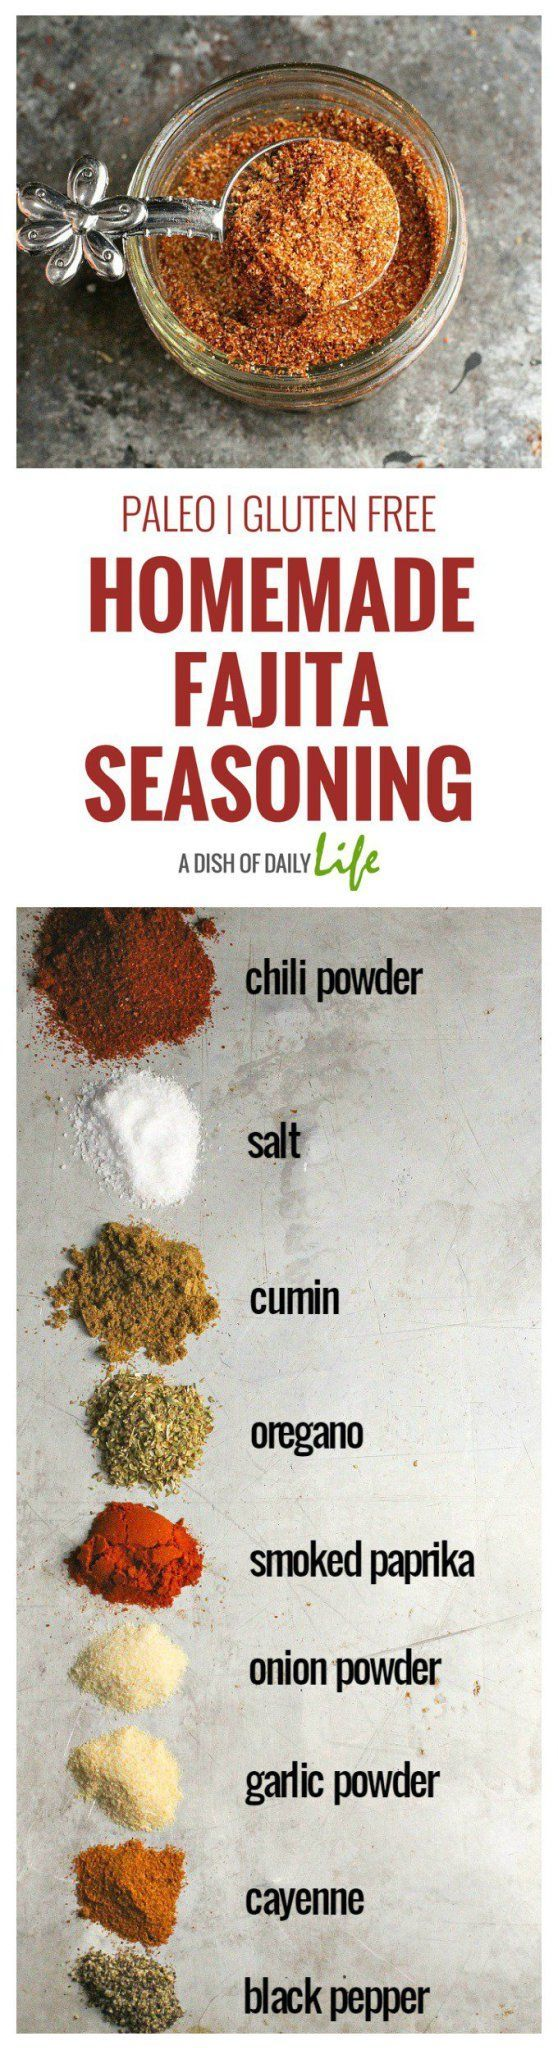 This Fajita Seasoning Recipe is perfect for chicken, beef, shrimp, and vegetables, either as a dry rub or a marinade! You can make at home in 5 minutes with ingredients you already have in your spice cabinet and it tastes better than the store bought pack